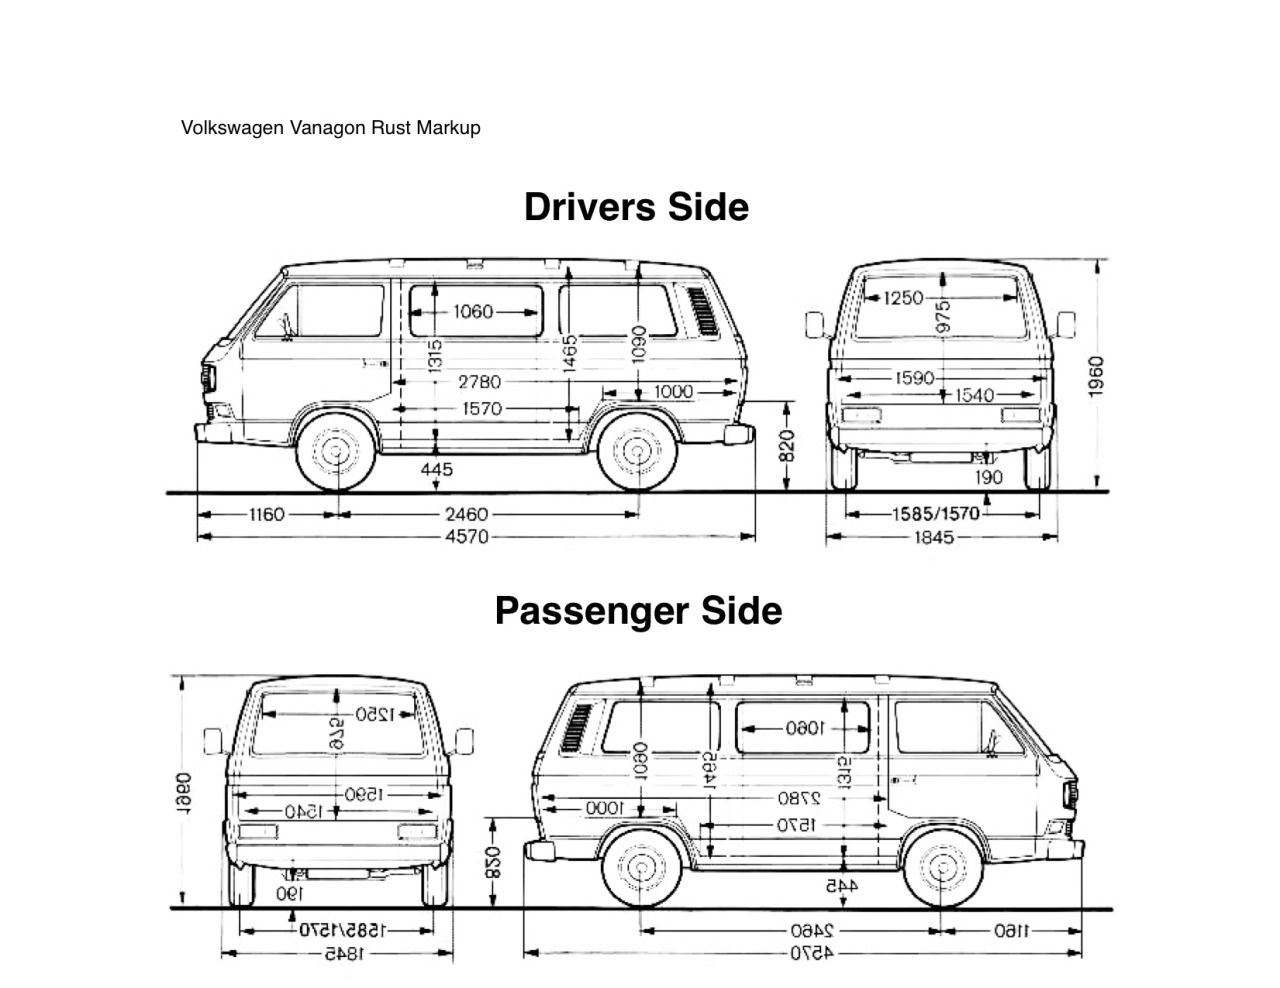 small resolution of vw vanagon rust diagram track the rust or damage to your vanagon body